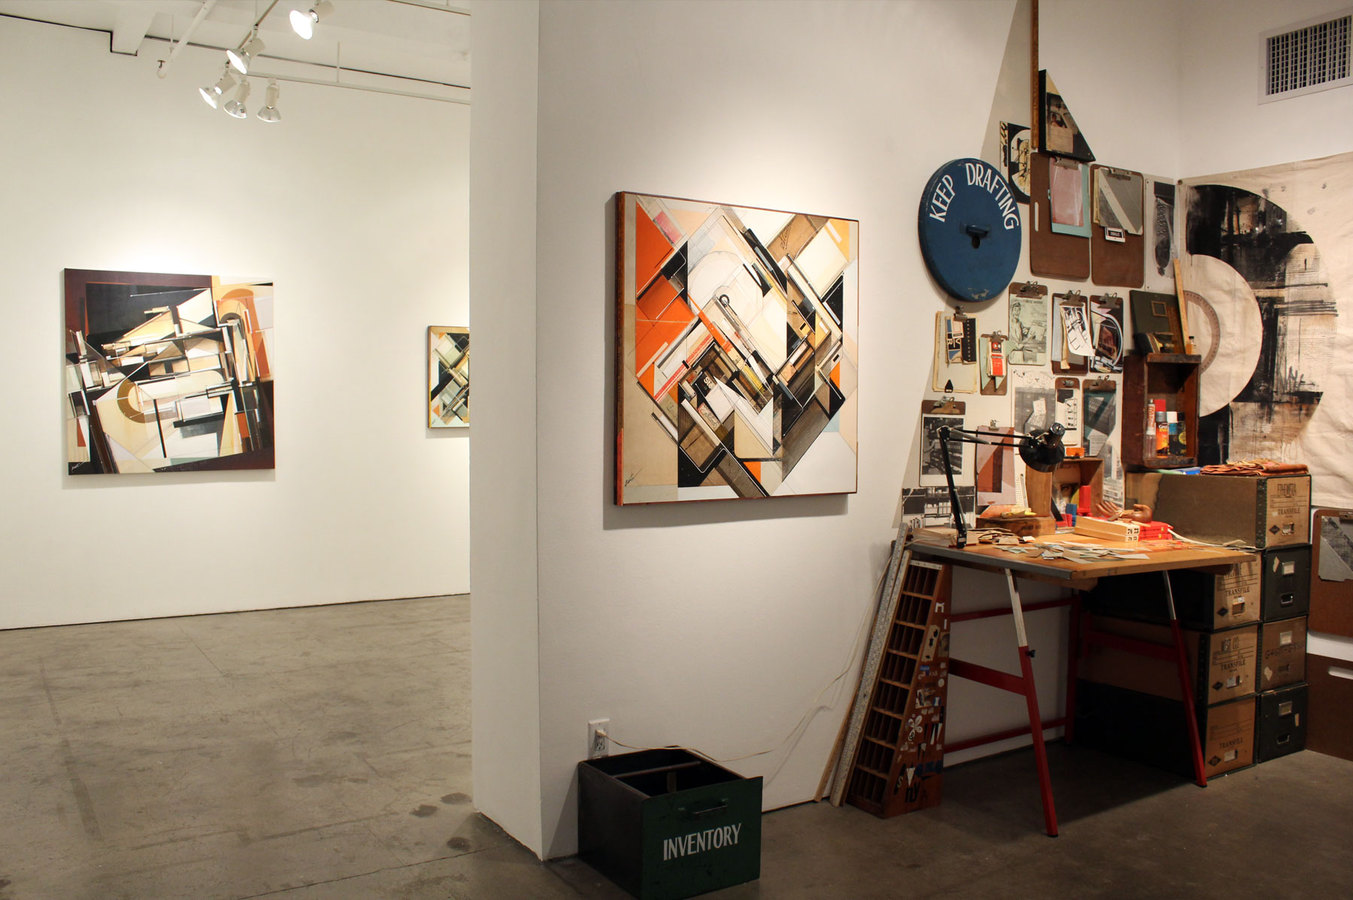 I N V E N T O R Y INVENTORY on site installation view